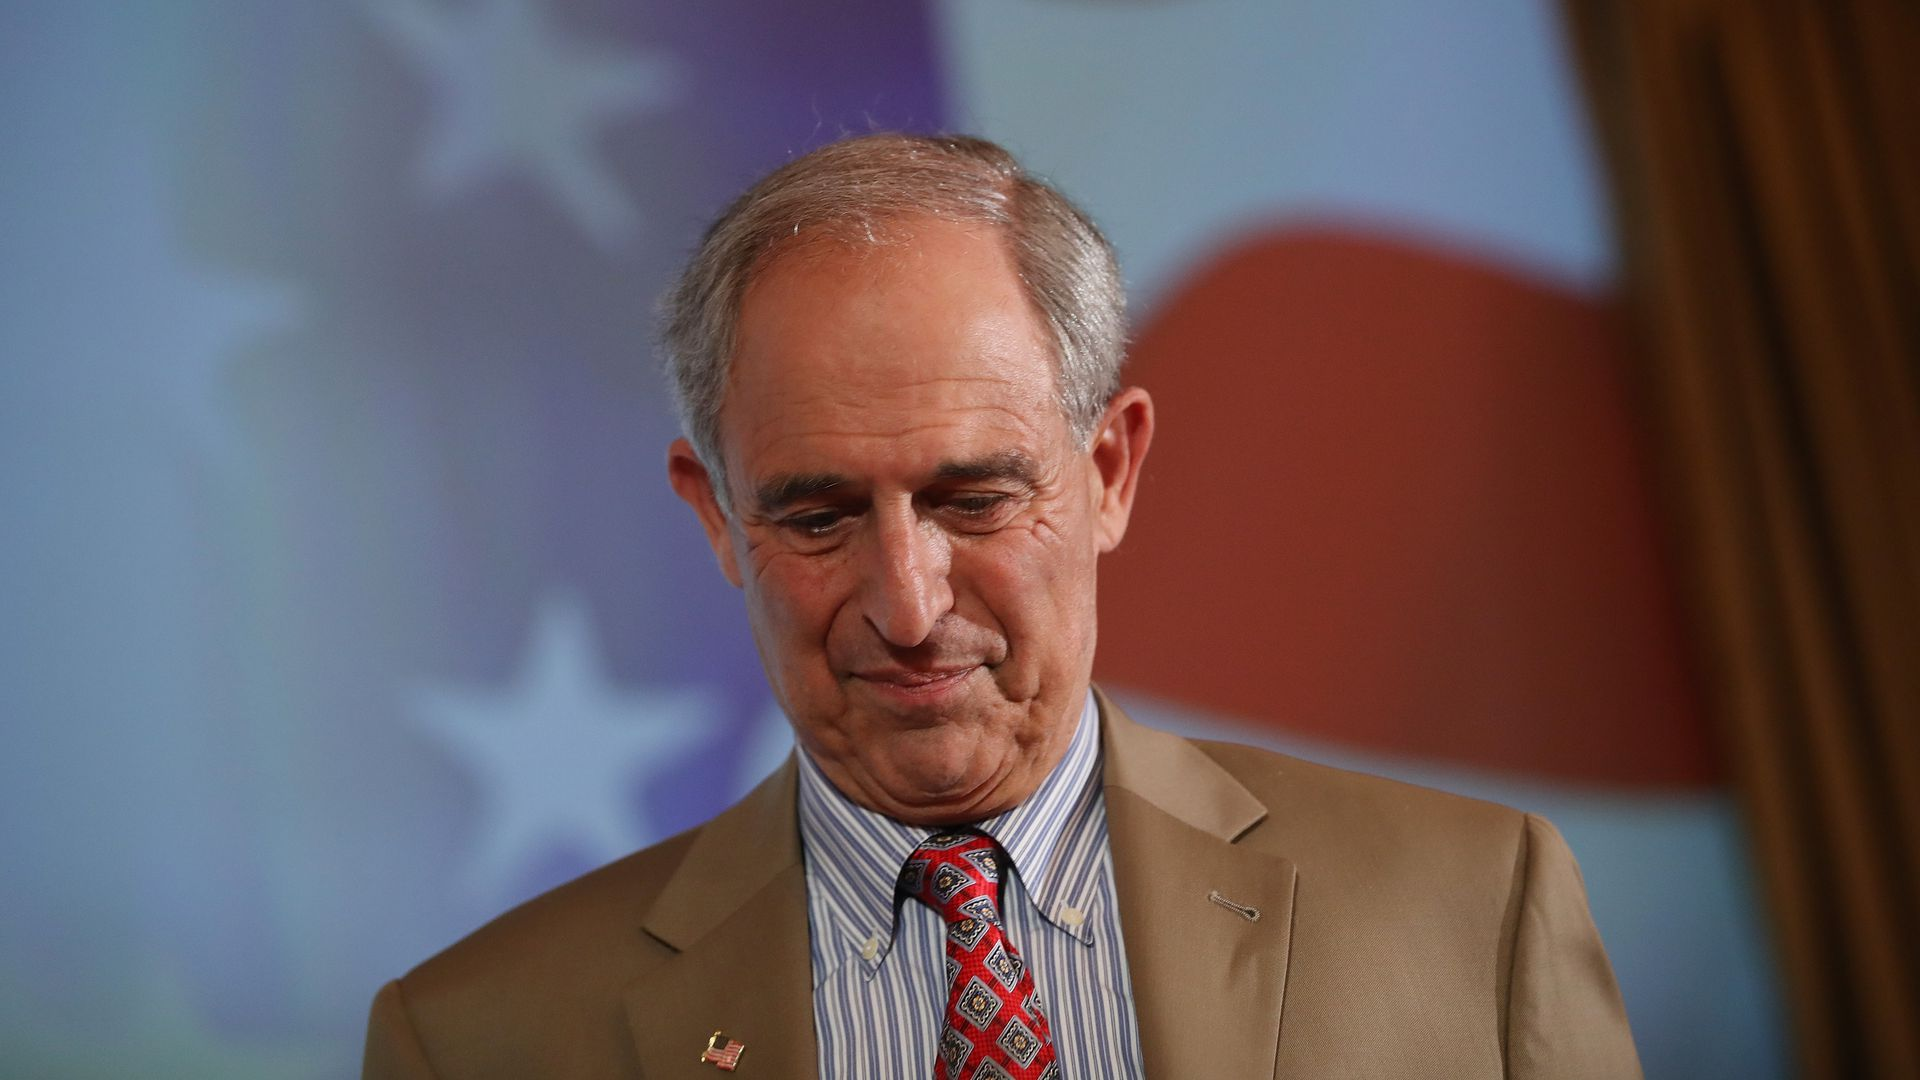 Lanny Davis looks down while on stage